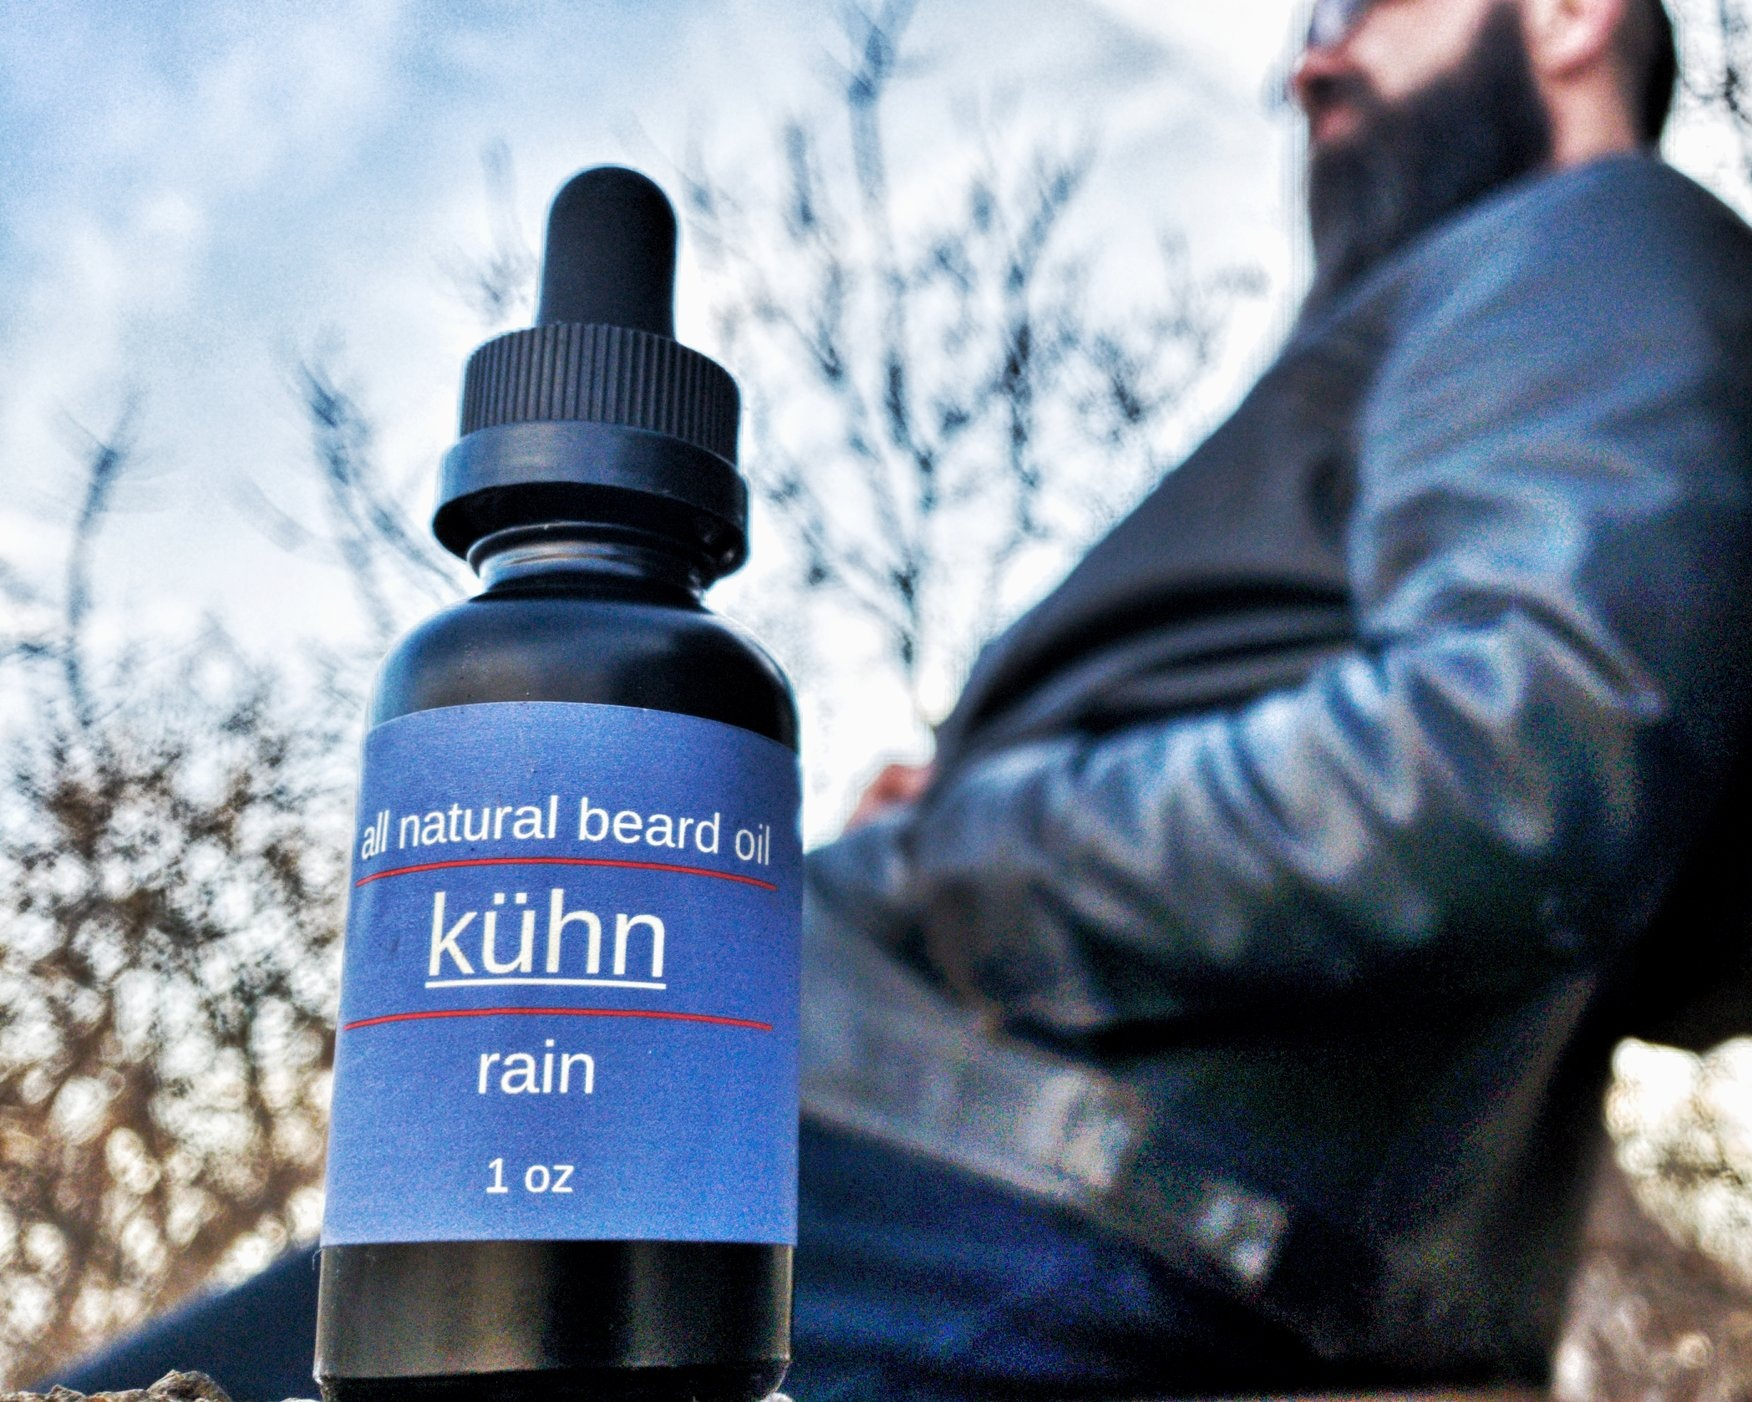 Kuhn+Beard+Oil+beard+balm